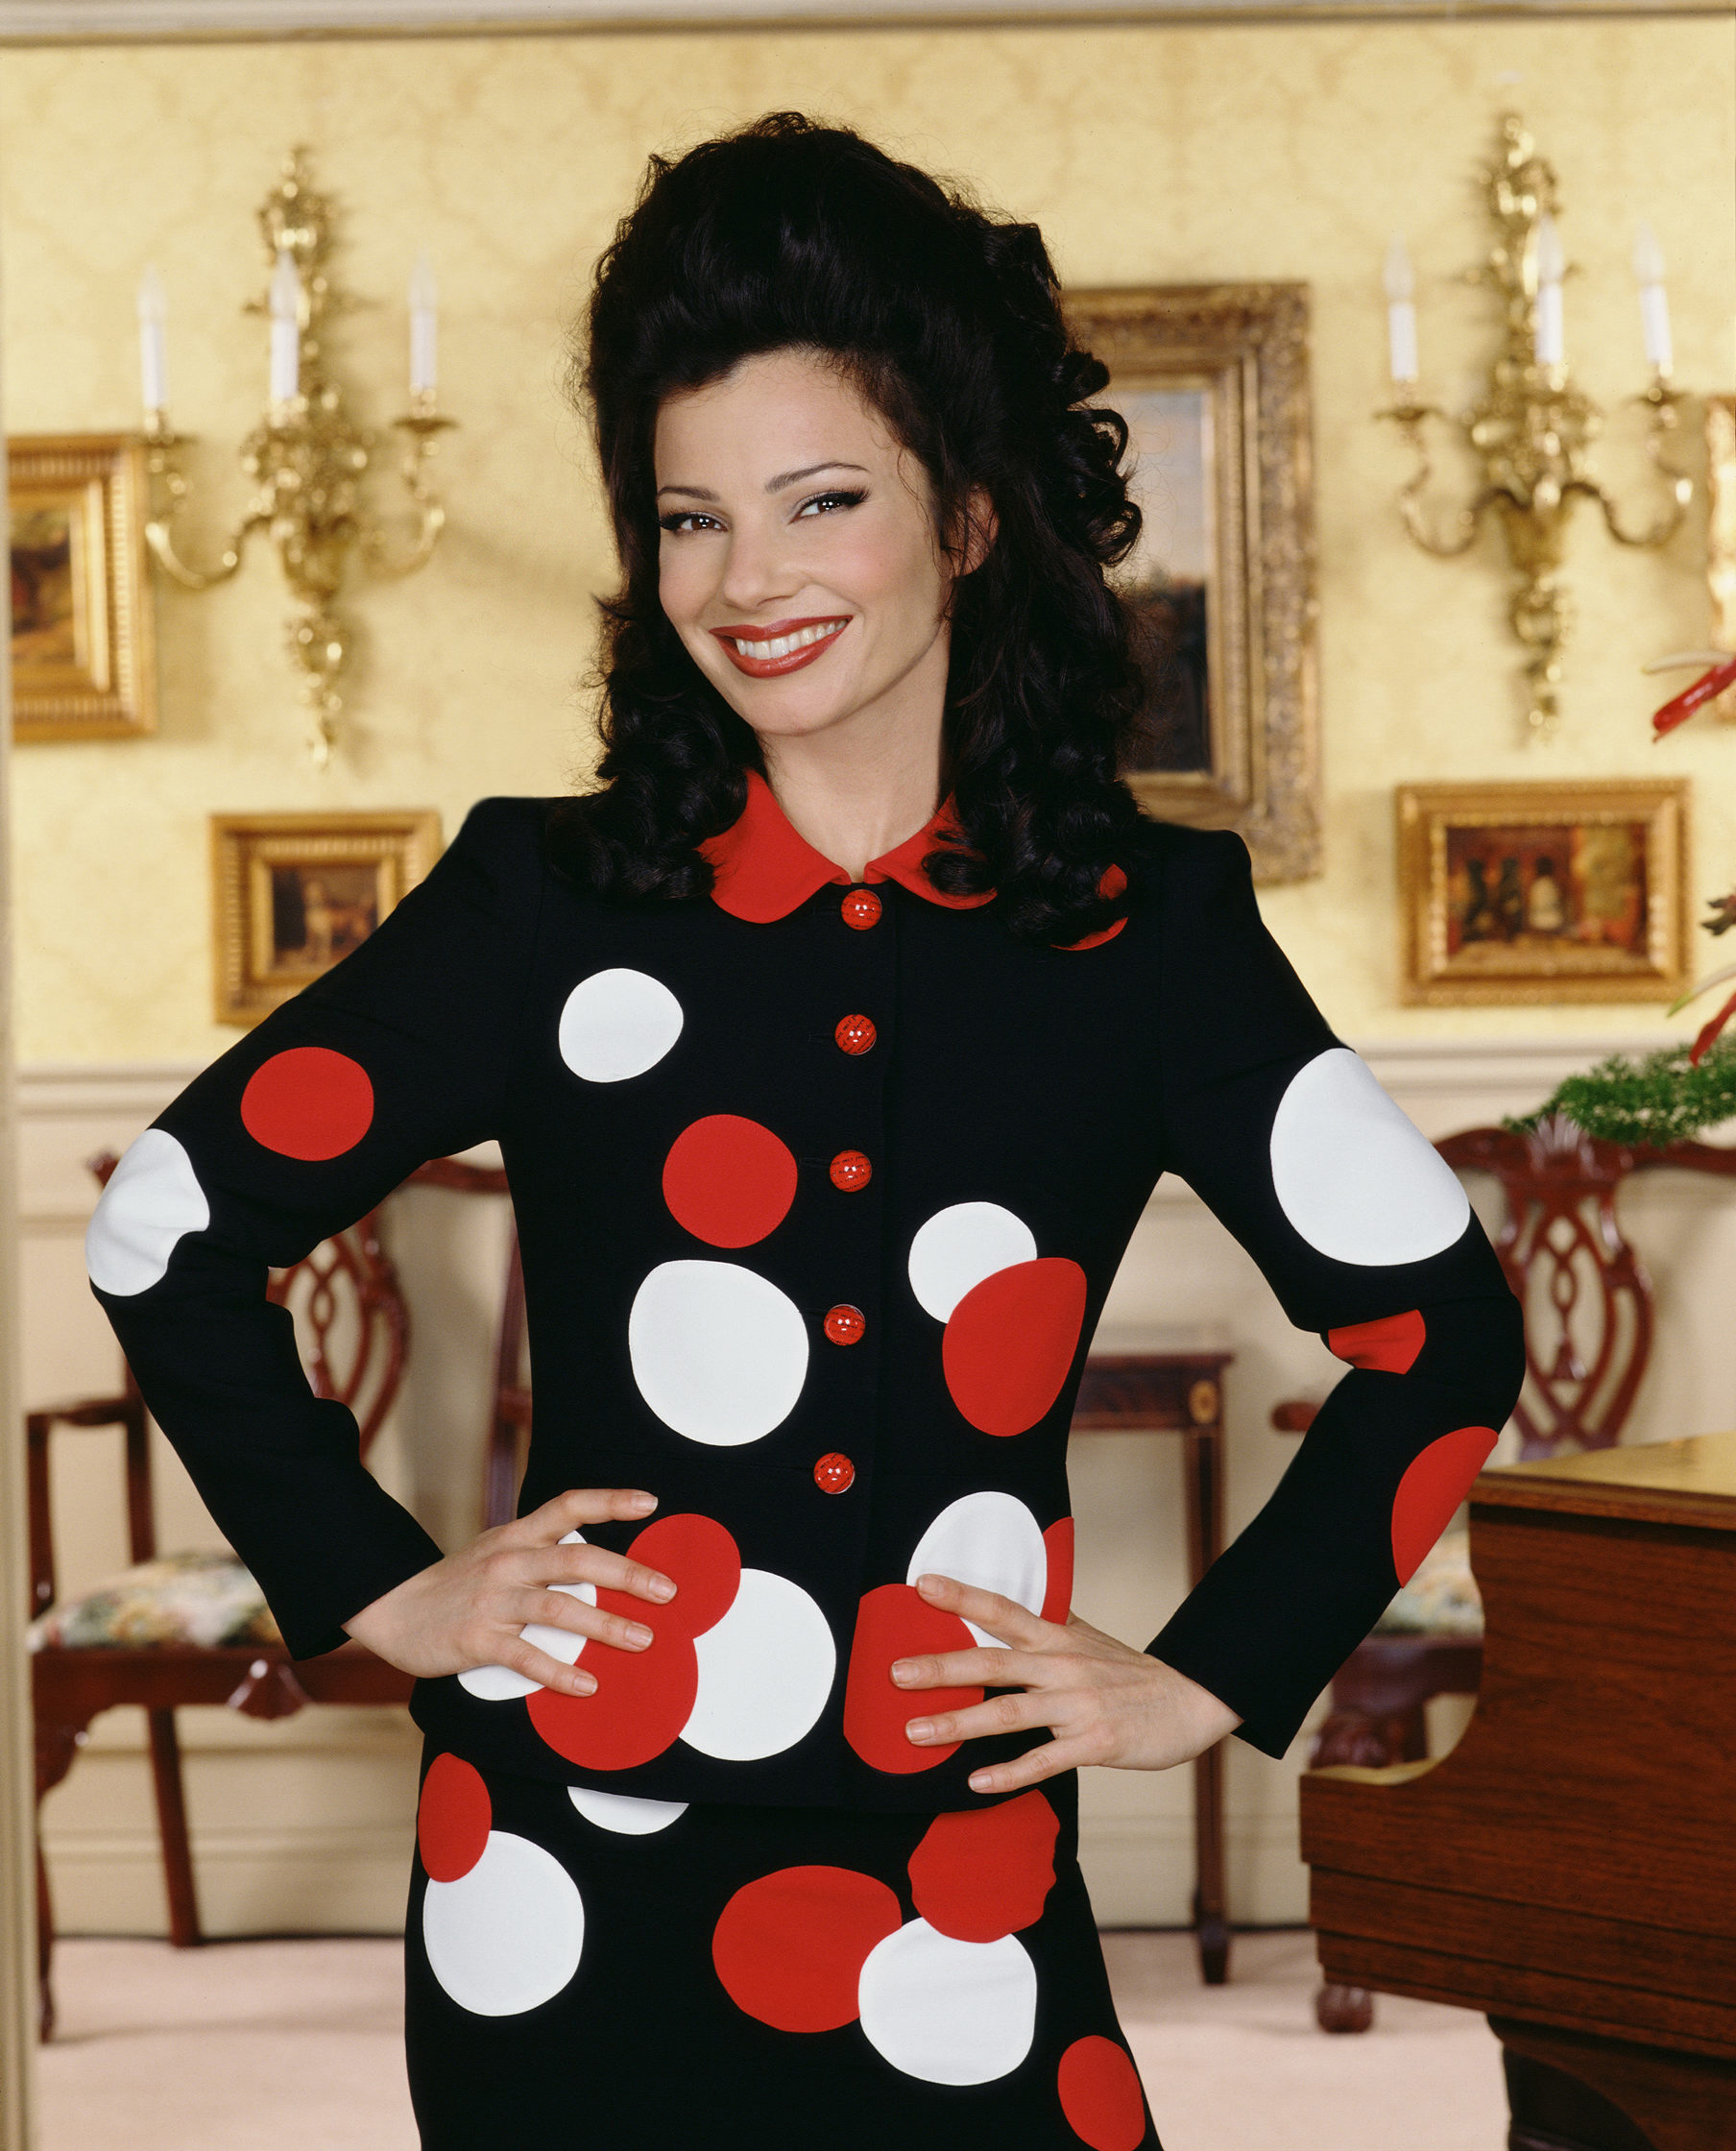 "Hold onto your plaid mini-skirt and bouffant hairdo, one of television's most fashionable (and funniest) characters is set to make a comeback.<br> <br> Actress Fran Drescher, who played the beguiling and bemusing Fran Fine on CBS'S <em>The Nanny</em> from 1993-1999, has revealed that she's ""in talks"" to bring the hit sitcom back to life nearly 20 years after the series finale aired. Oy!<br> <br> ""We're talking about it. Peter (executive producer) and I are talking about it,"" Drescher told <em><a href=""https://www.etonline.com/fran-drescher-says-nanny-revival-could-be-really-good-after-teasing-big-announcement-exclusive"" target=""_blank"" draggable=""false"">Entertainment Tonight.</a></em> ""We're working on a very big project. It's going to be very exciting for the fans, but I'm not at liberty to announce it yet. But it's gonna be big.""<br> <br> While this news is enough to make us want to jump up and down on Sylvia's plastic covered couch, it's also the perfect time to look back at the defining style of fashion's favourite nasal-voiced clothes horse. After all, this is the woman who was wearing red whilst everyone else was in tan.<br> <br> From her ability to mix Moschino and Mugler with a bargain buy from Loehmann's, Fine was one of the small screen's original sartorial risk-takers.<br> <br> Fine's fashion legacy is so memorable it's even spawned it's own Instagram page, <a href=""http://https://www.instagram.com/whatfranwore/?hl=en"" target=""_blank"" draggable=""false"">@WhatFranWore</a>, an account that chronicles, well, the whole megillah of her closet: tight skirt suits and waist-flaunting cropped jackets from Dolce & Gabbana, Todd Oldham and Versus Versace.<br> <br> ""We wanted to make that character be a clotheshorse, because I wear clothes so well, and we understood that television is a visual medium,"" Drescher told <em><a href=""https://www.vogue.com/article/what-to-wear-to-passover-seder-the-nanny-fran-drescher-style"" target=""_blank"" draggable=""false"">US Vogue</a></em> in 2016. <br> <br> ""So it was important for us that she be able to look sexy and dress fun and, you know, just be a surprise in every way.""<br> <br> Click through to revisit some of Fran Fine's most fashionable moments."